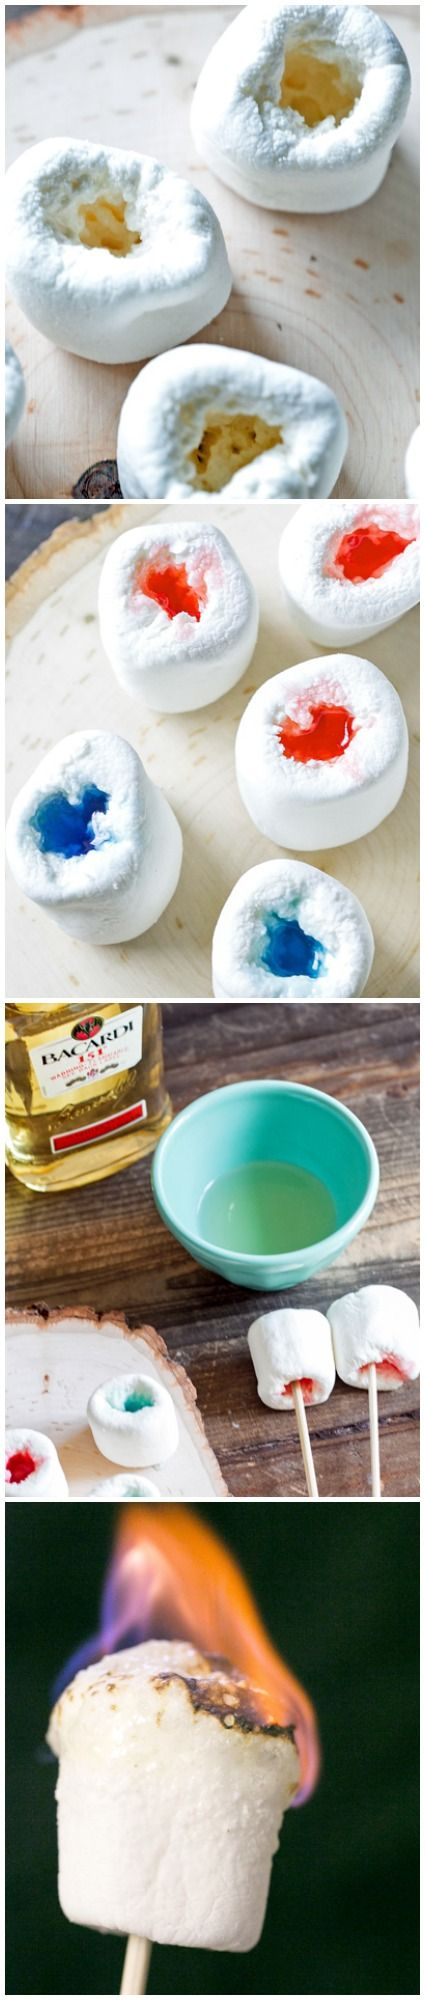 A jello shot inside a marshmallow, eat plain or you can toast them first! Just like roasting a marshmallow, make sure you blow out the flame out before you eat it ;)